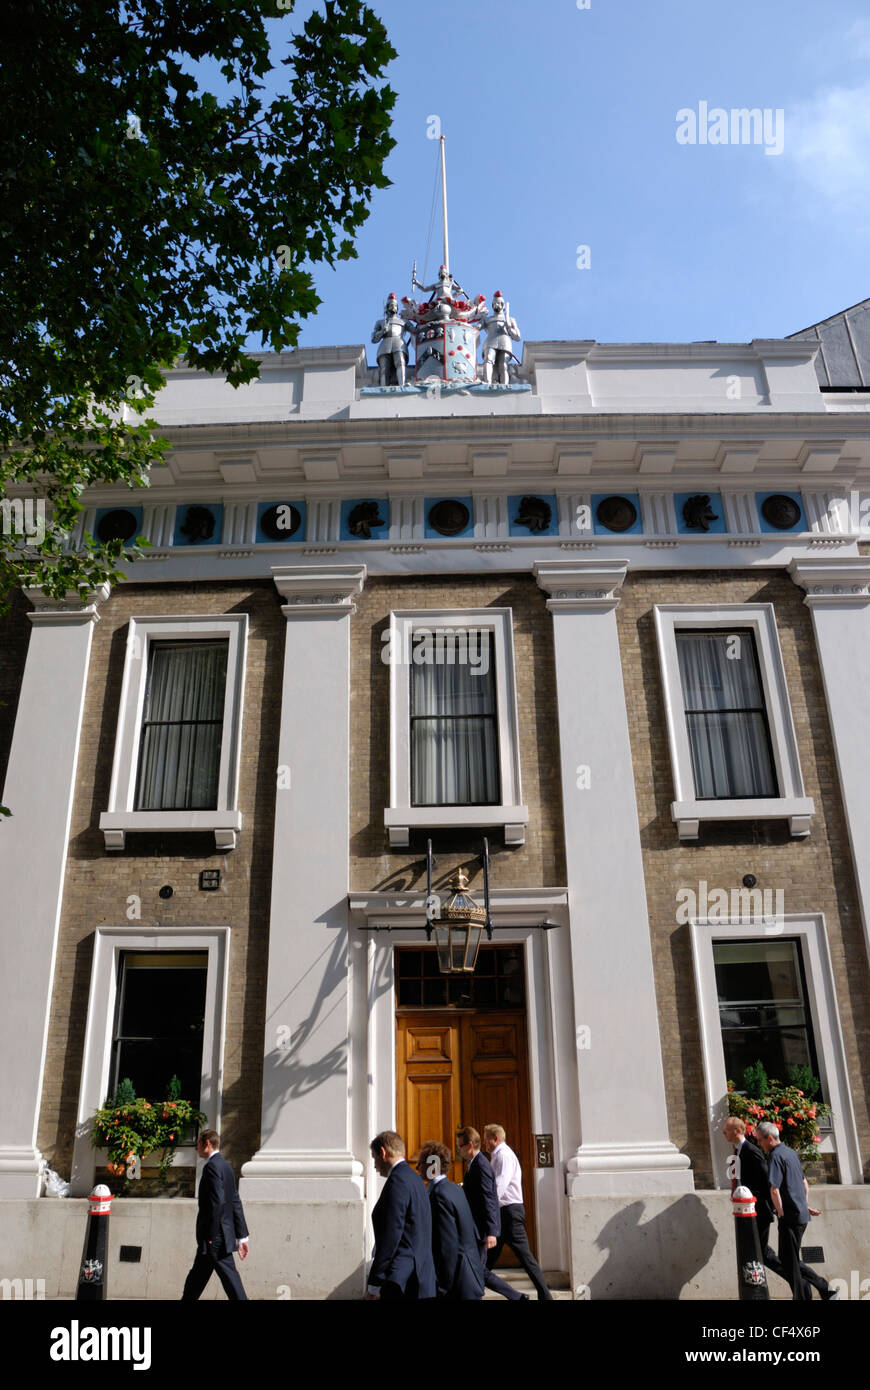 The Armourers' Hall in Coleman Street, one of only a few buildings to escape the Great Fire of London in 1666 - Stock Image